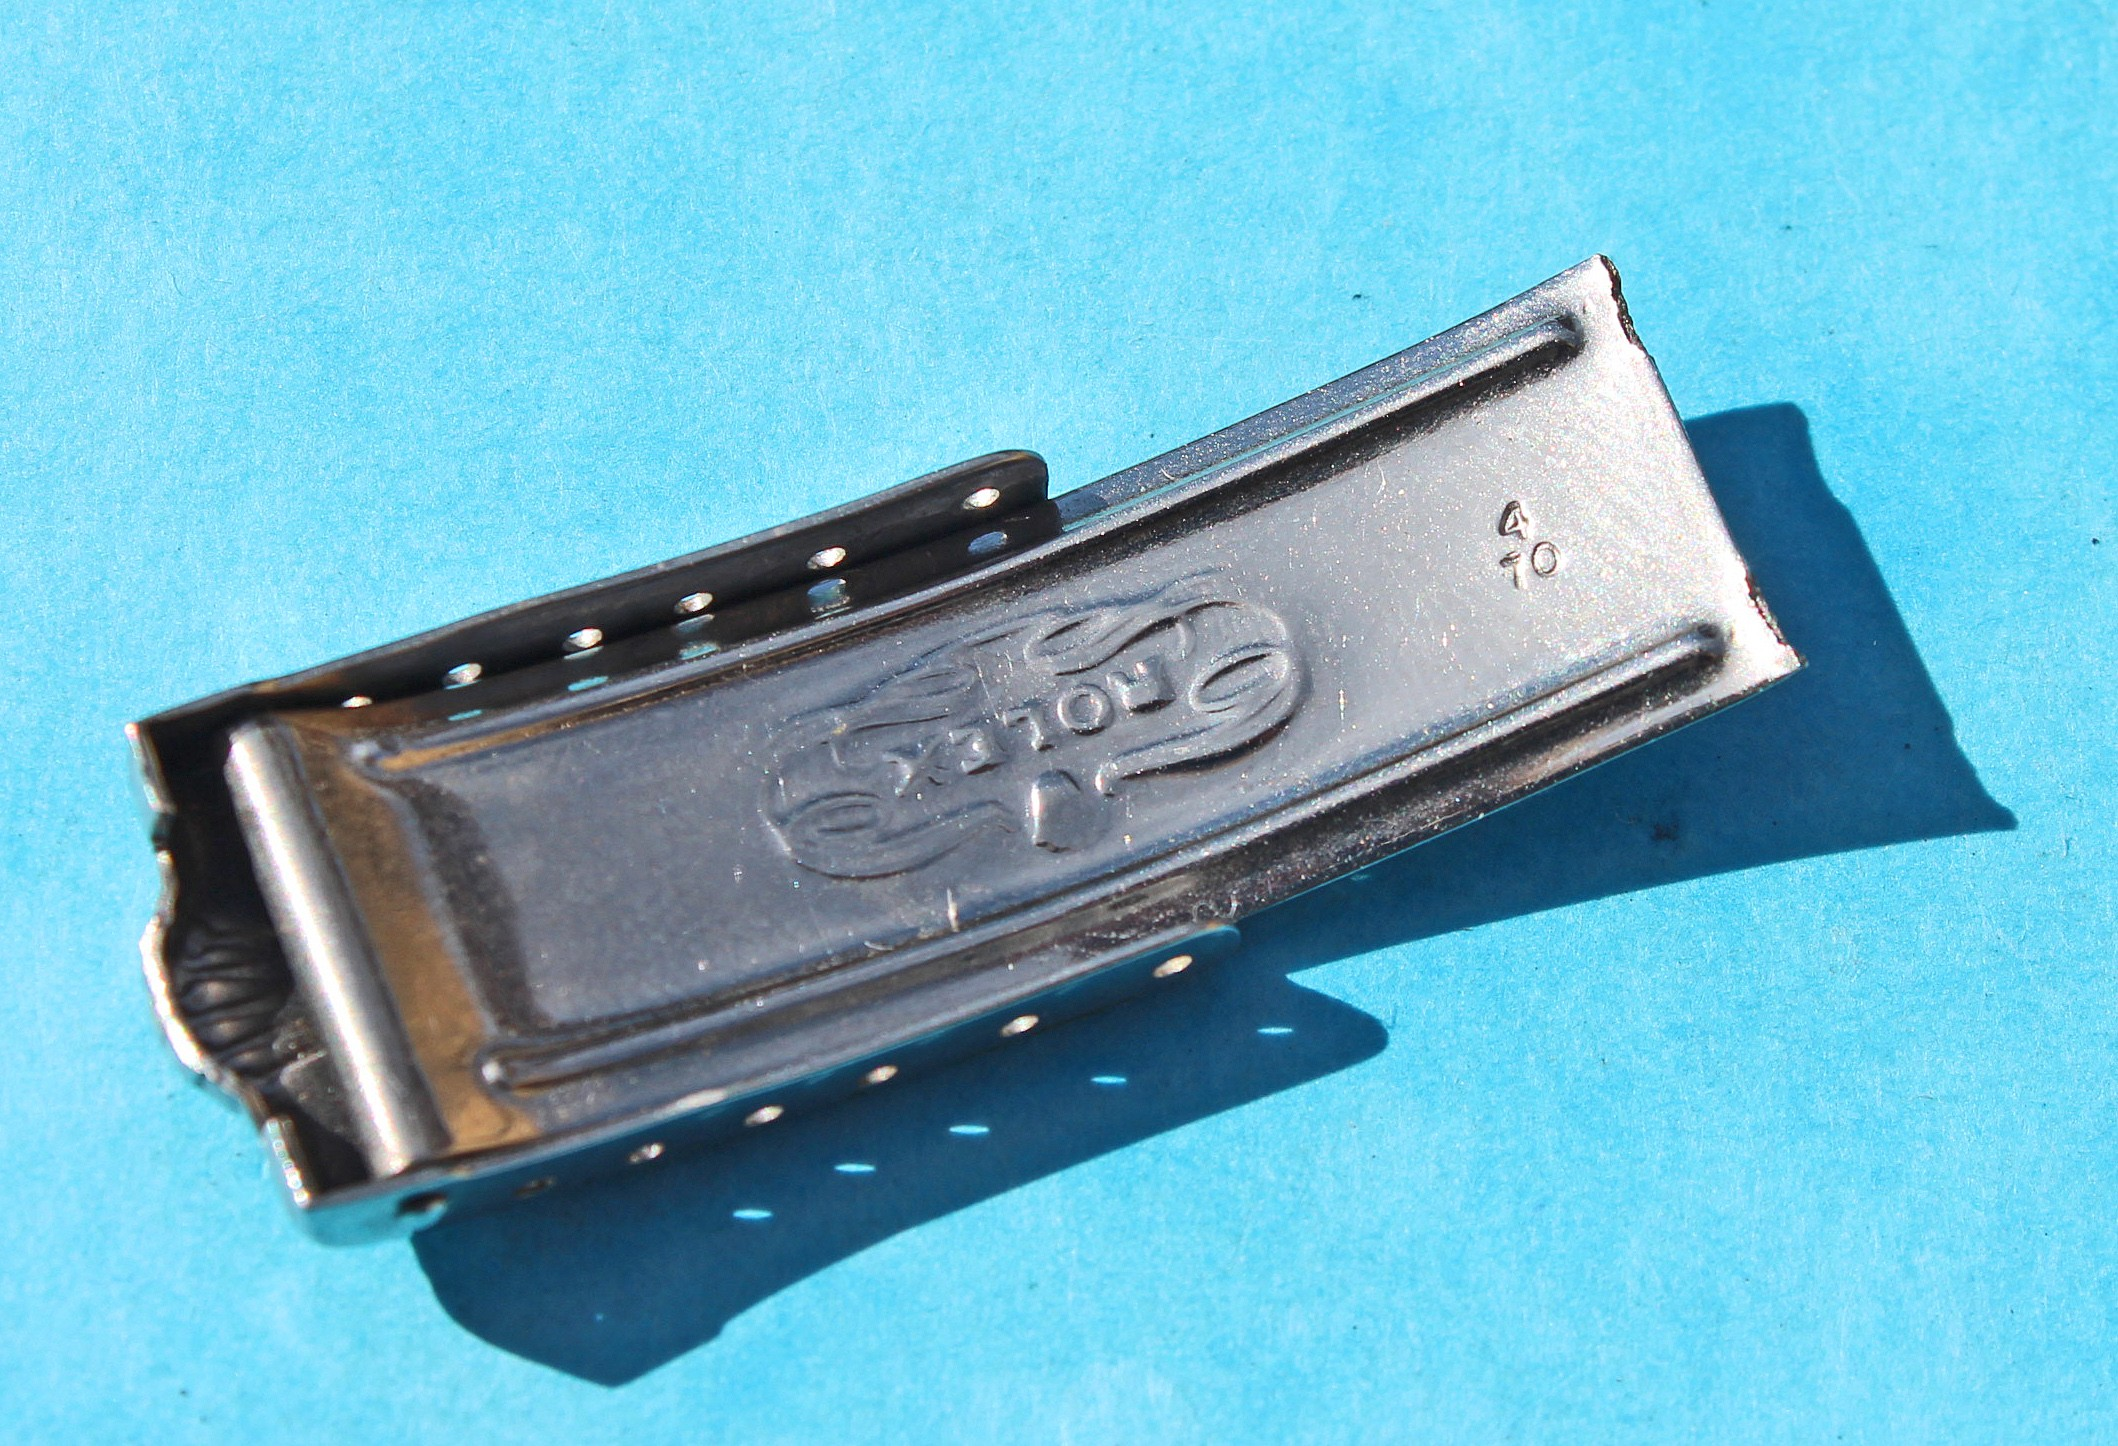 1970 Rolex Daytona Precision Oyster perpetual Big Crown Top cover Buckle 13.20mm from rivits Bracelet 19mm Watch Cover Clasp